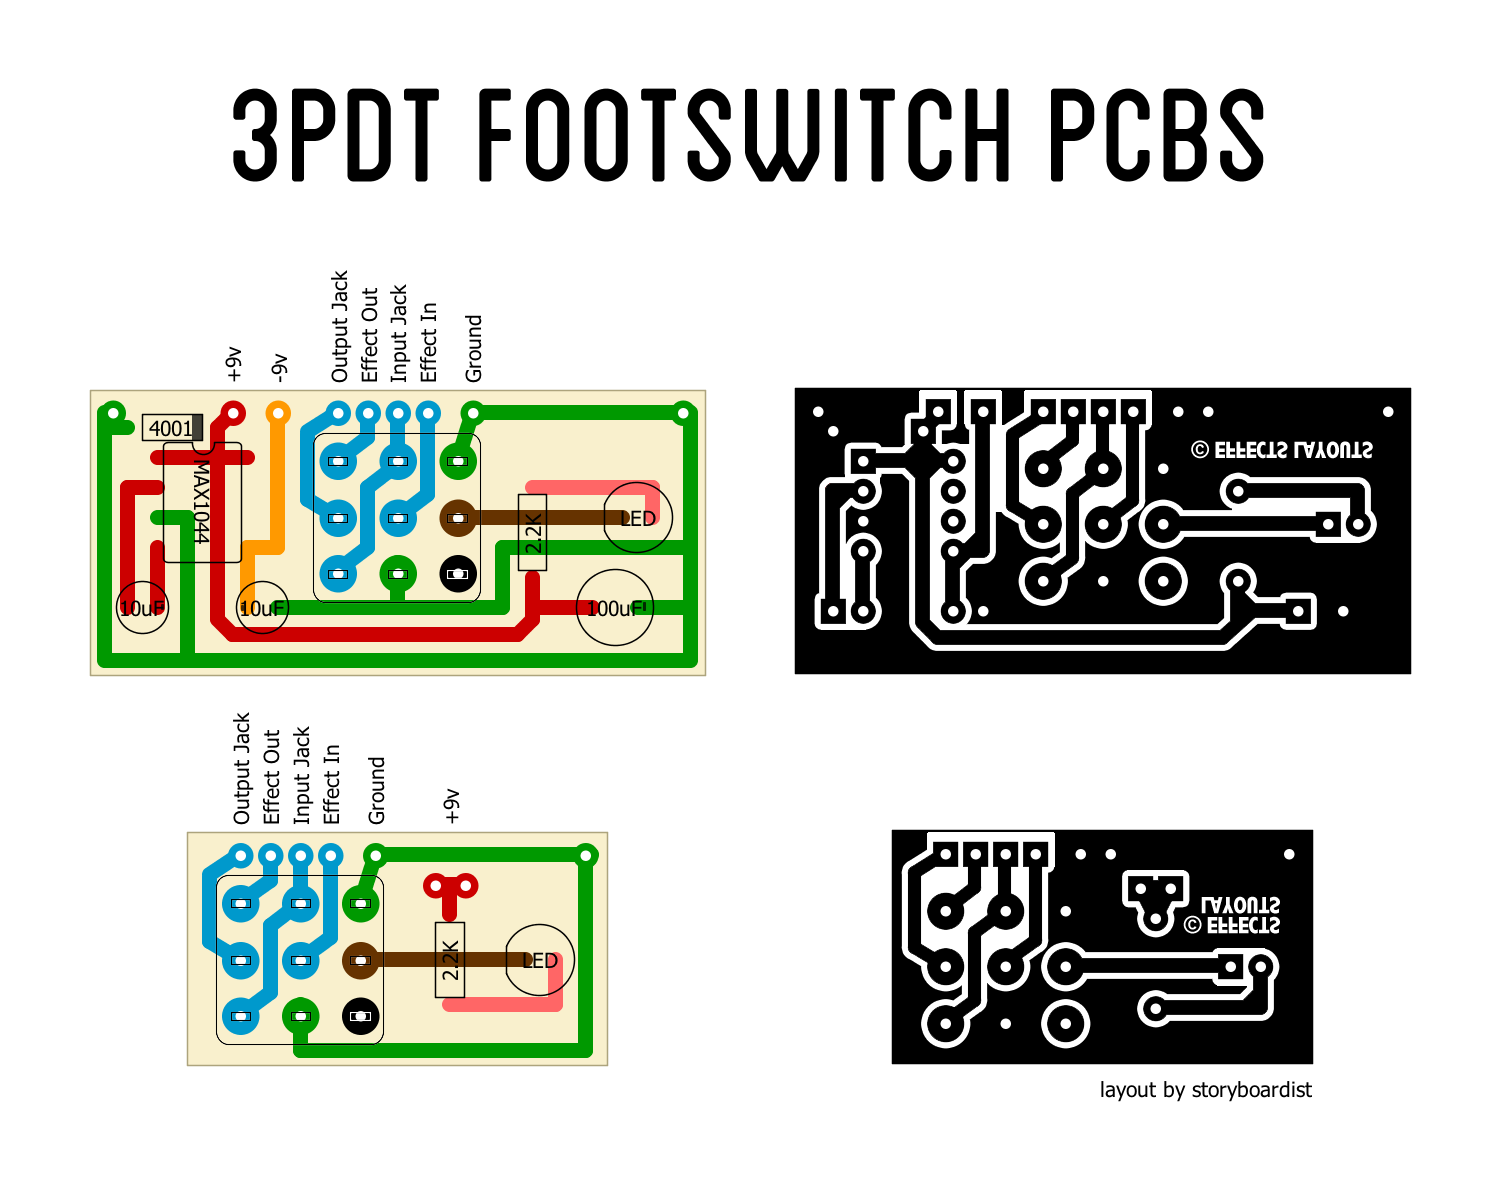 small resolution of printed circuit board layout for 3pdt bypass system with max1044 based charge pump for positive ground